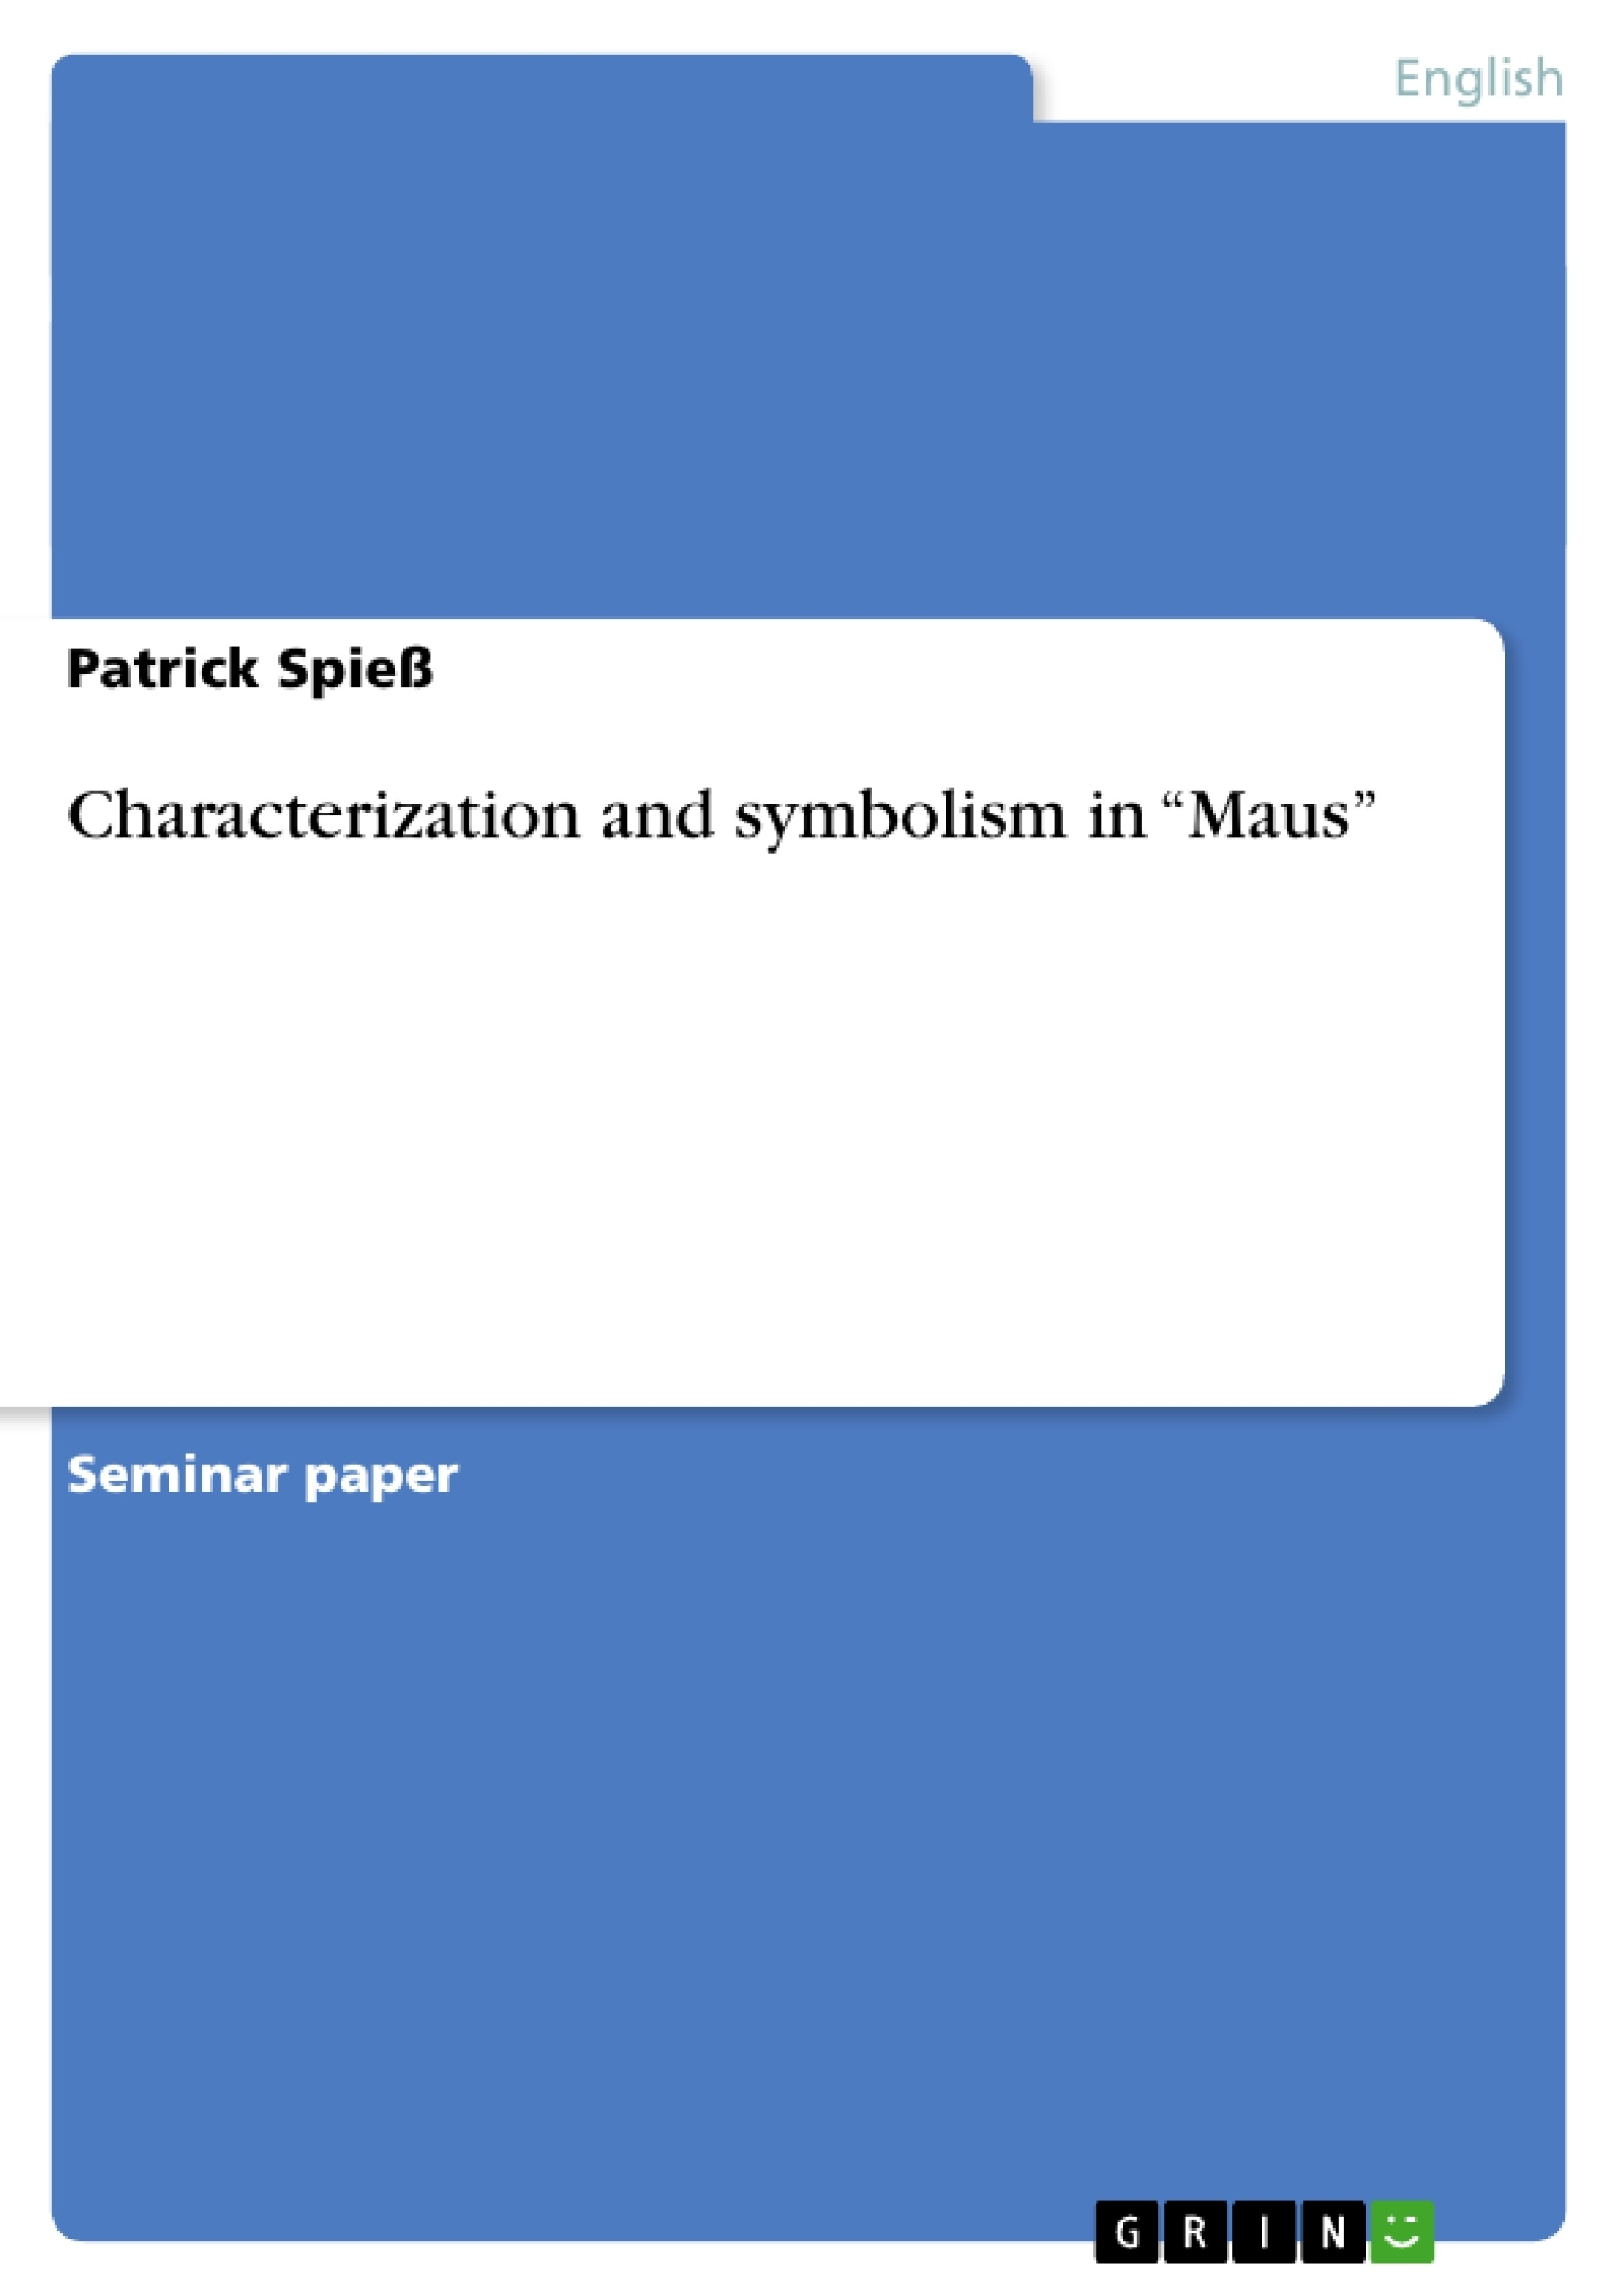 "characterization and symbolism in ""maus"" publish your master s  upload your own papers earn money and win an iphone x"